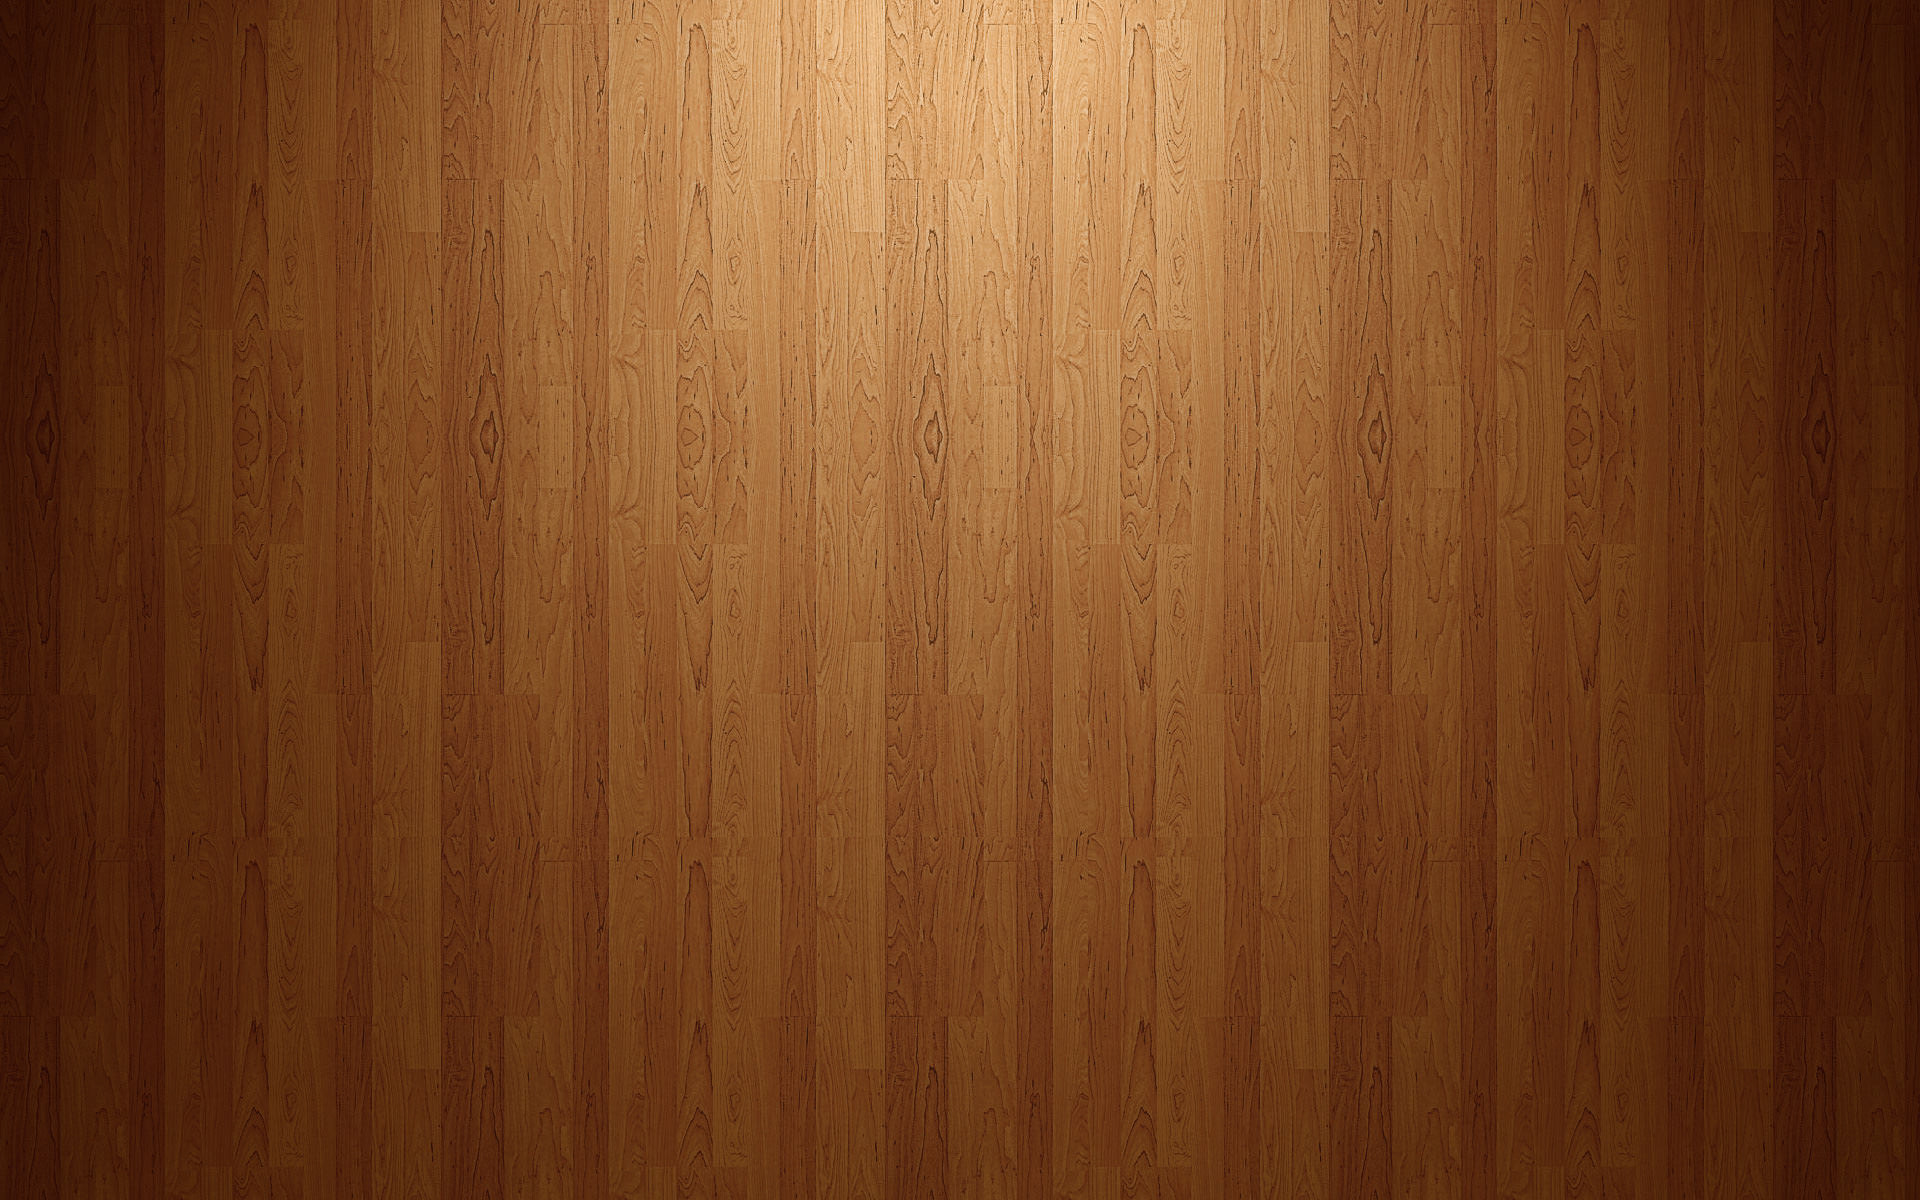 30 hd wood backgrounds wallpapers freecreatives for Wood wallpaper for walls